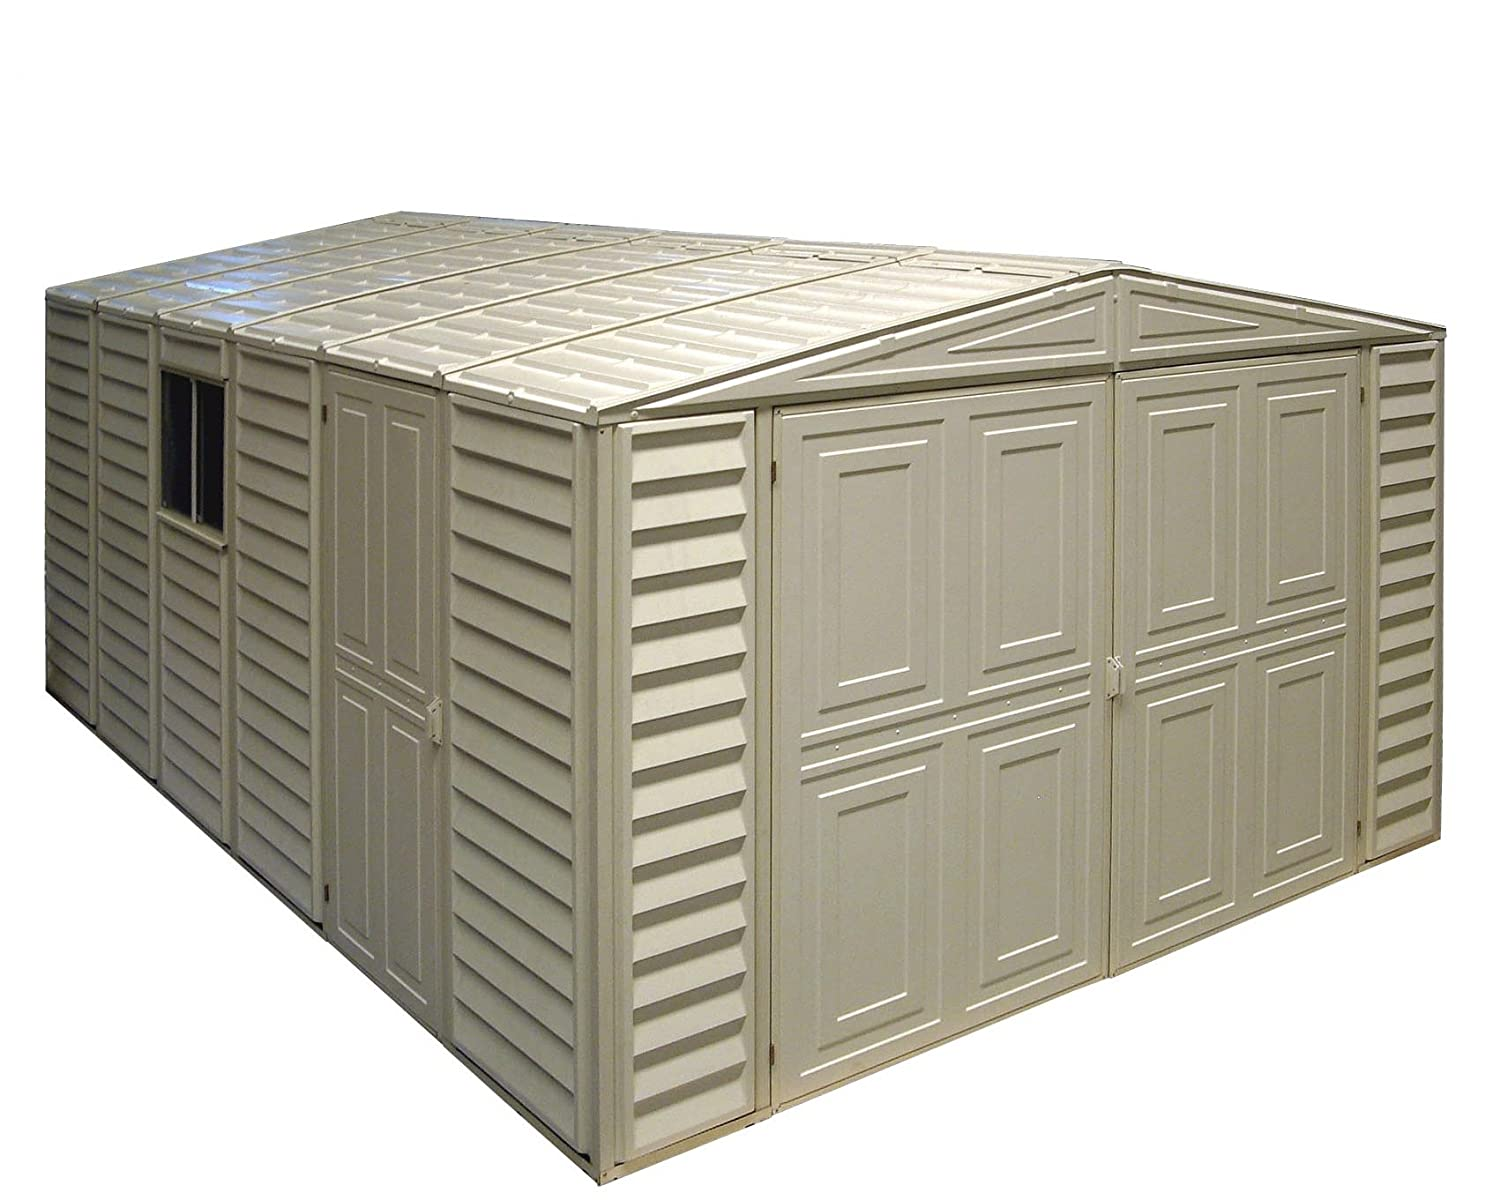 Amazon com duramax 01014 vinyl garage shed with foundation and window 10 by 15 5 inch storage sheds garden outdoor